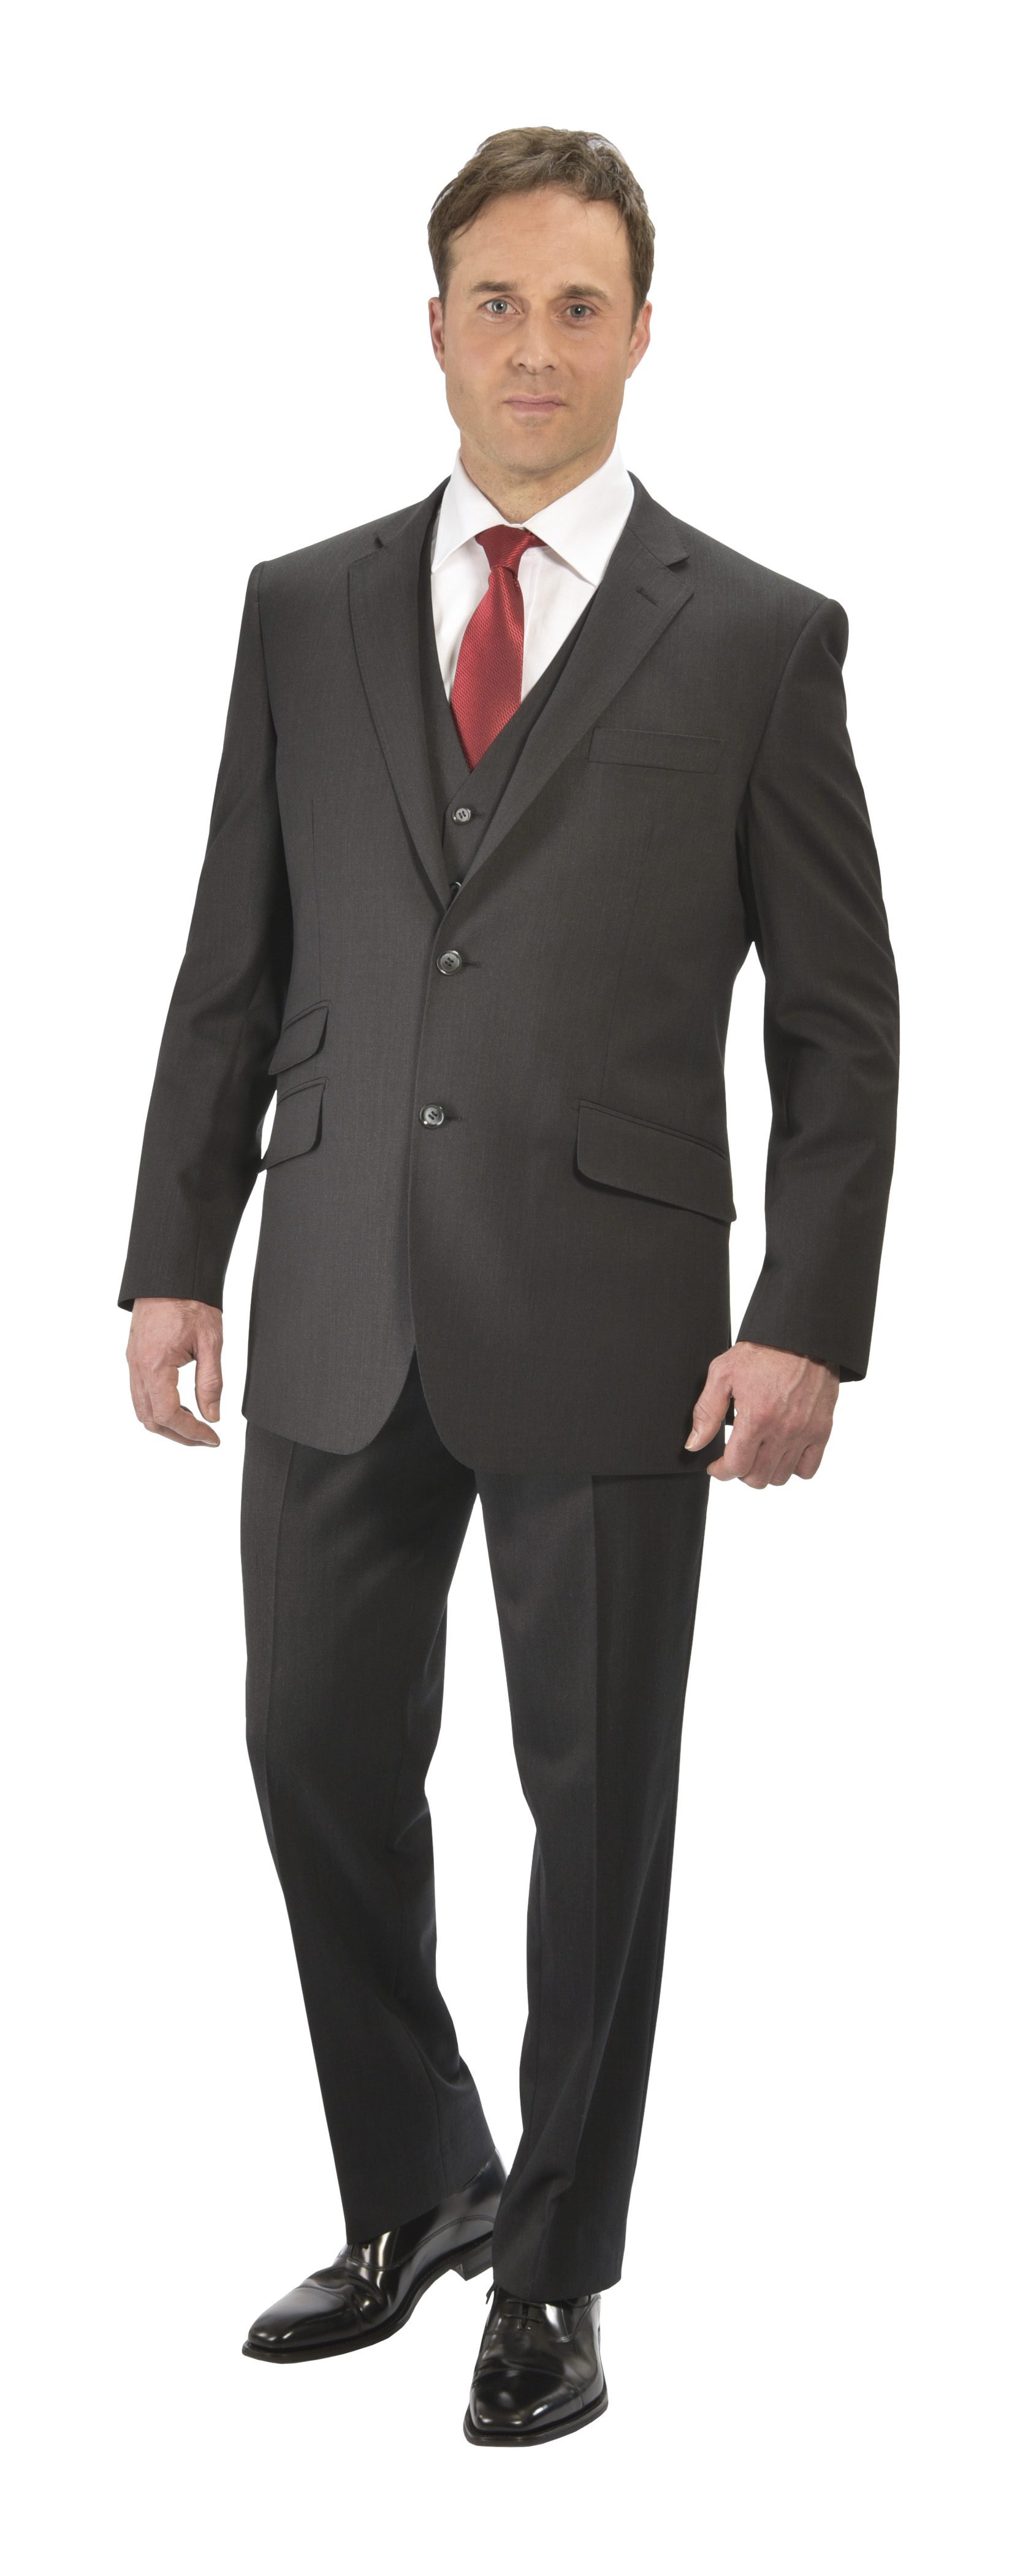 Charcoal Suit by Peter Drew